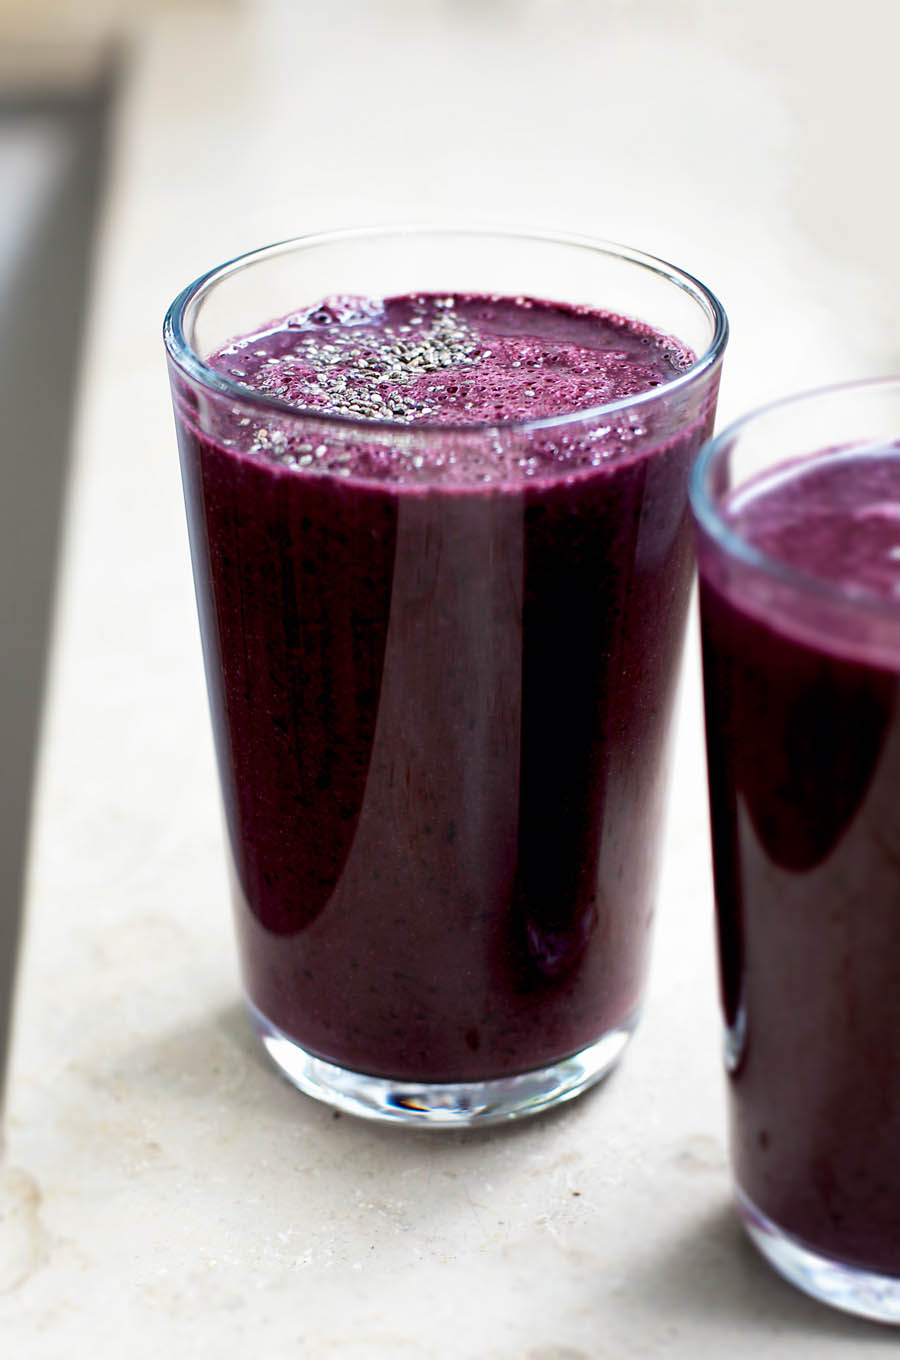 Two glasses filled with a dark purple blueberry smoothie, topped with chia seeds.